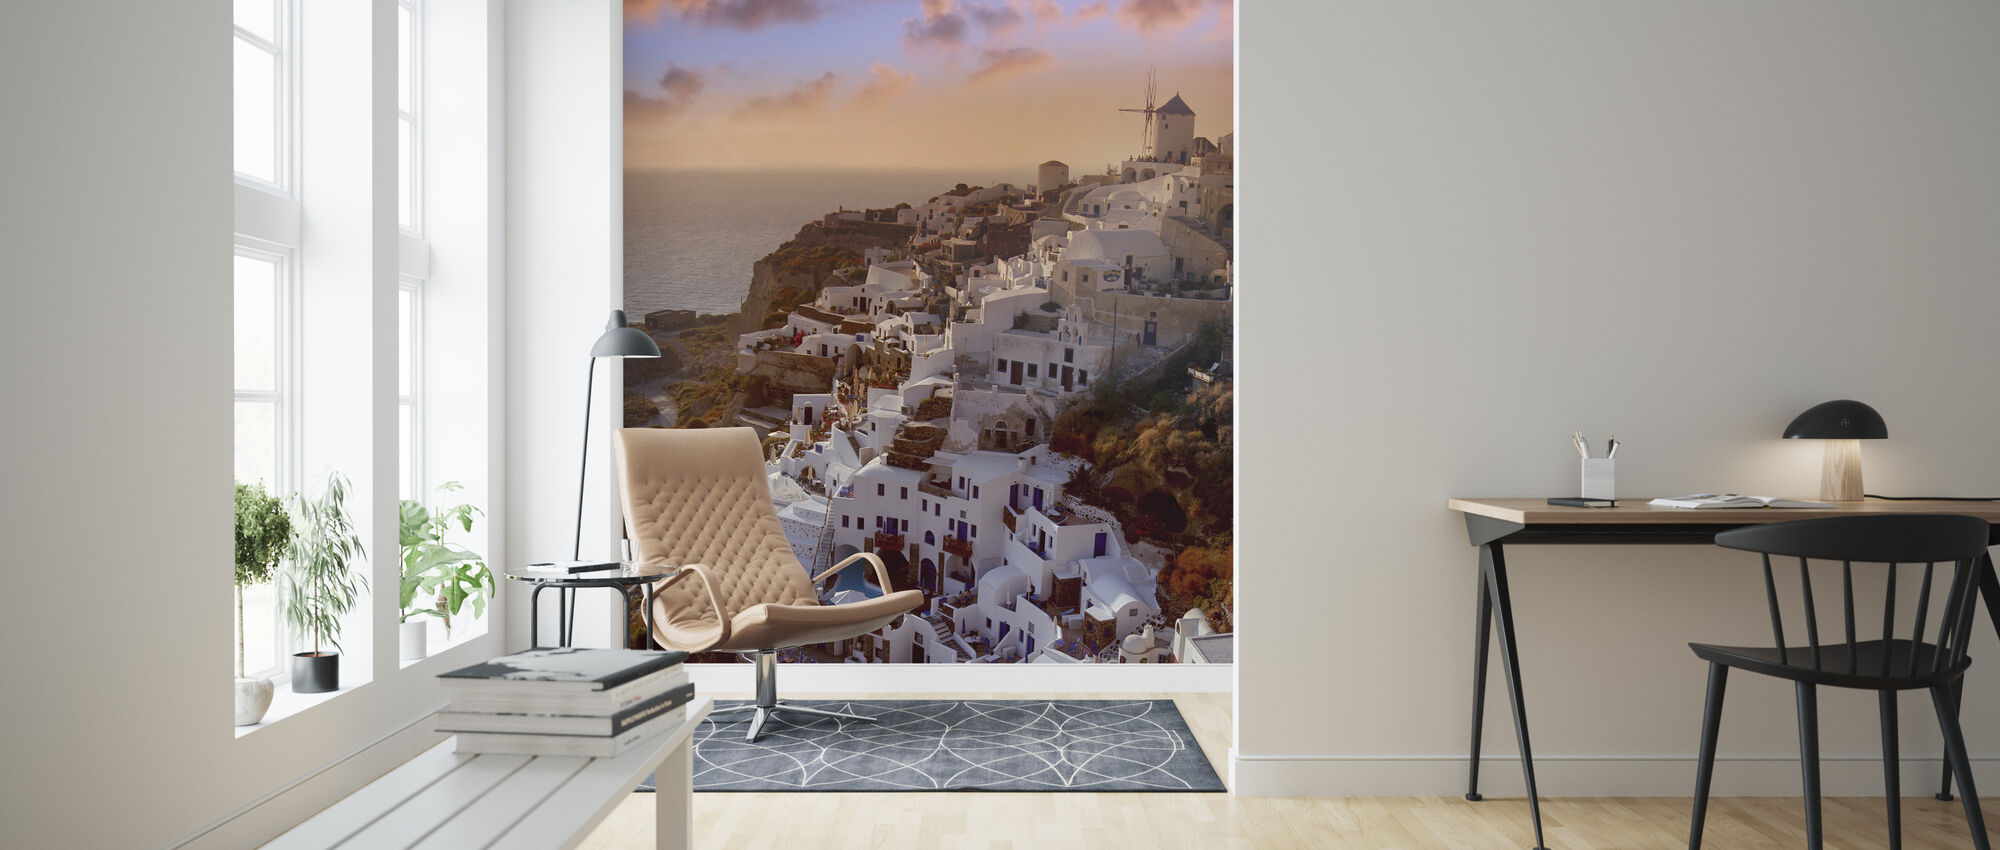 Santorini at Sunset - Wallpaper - Living Room